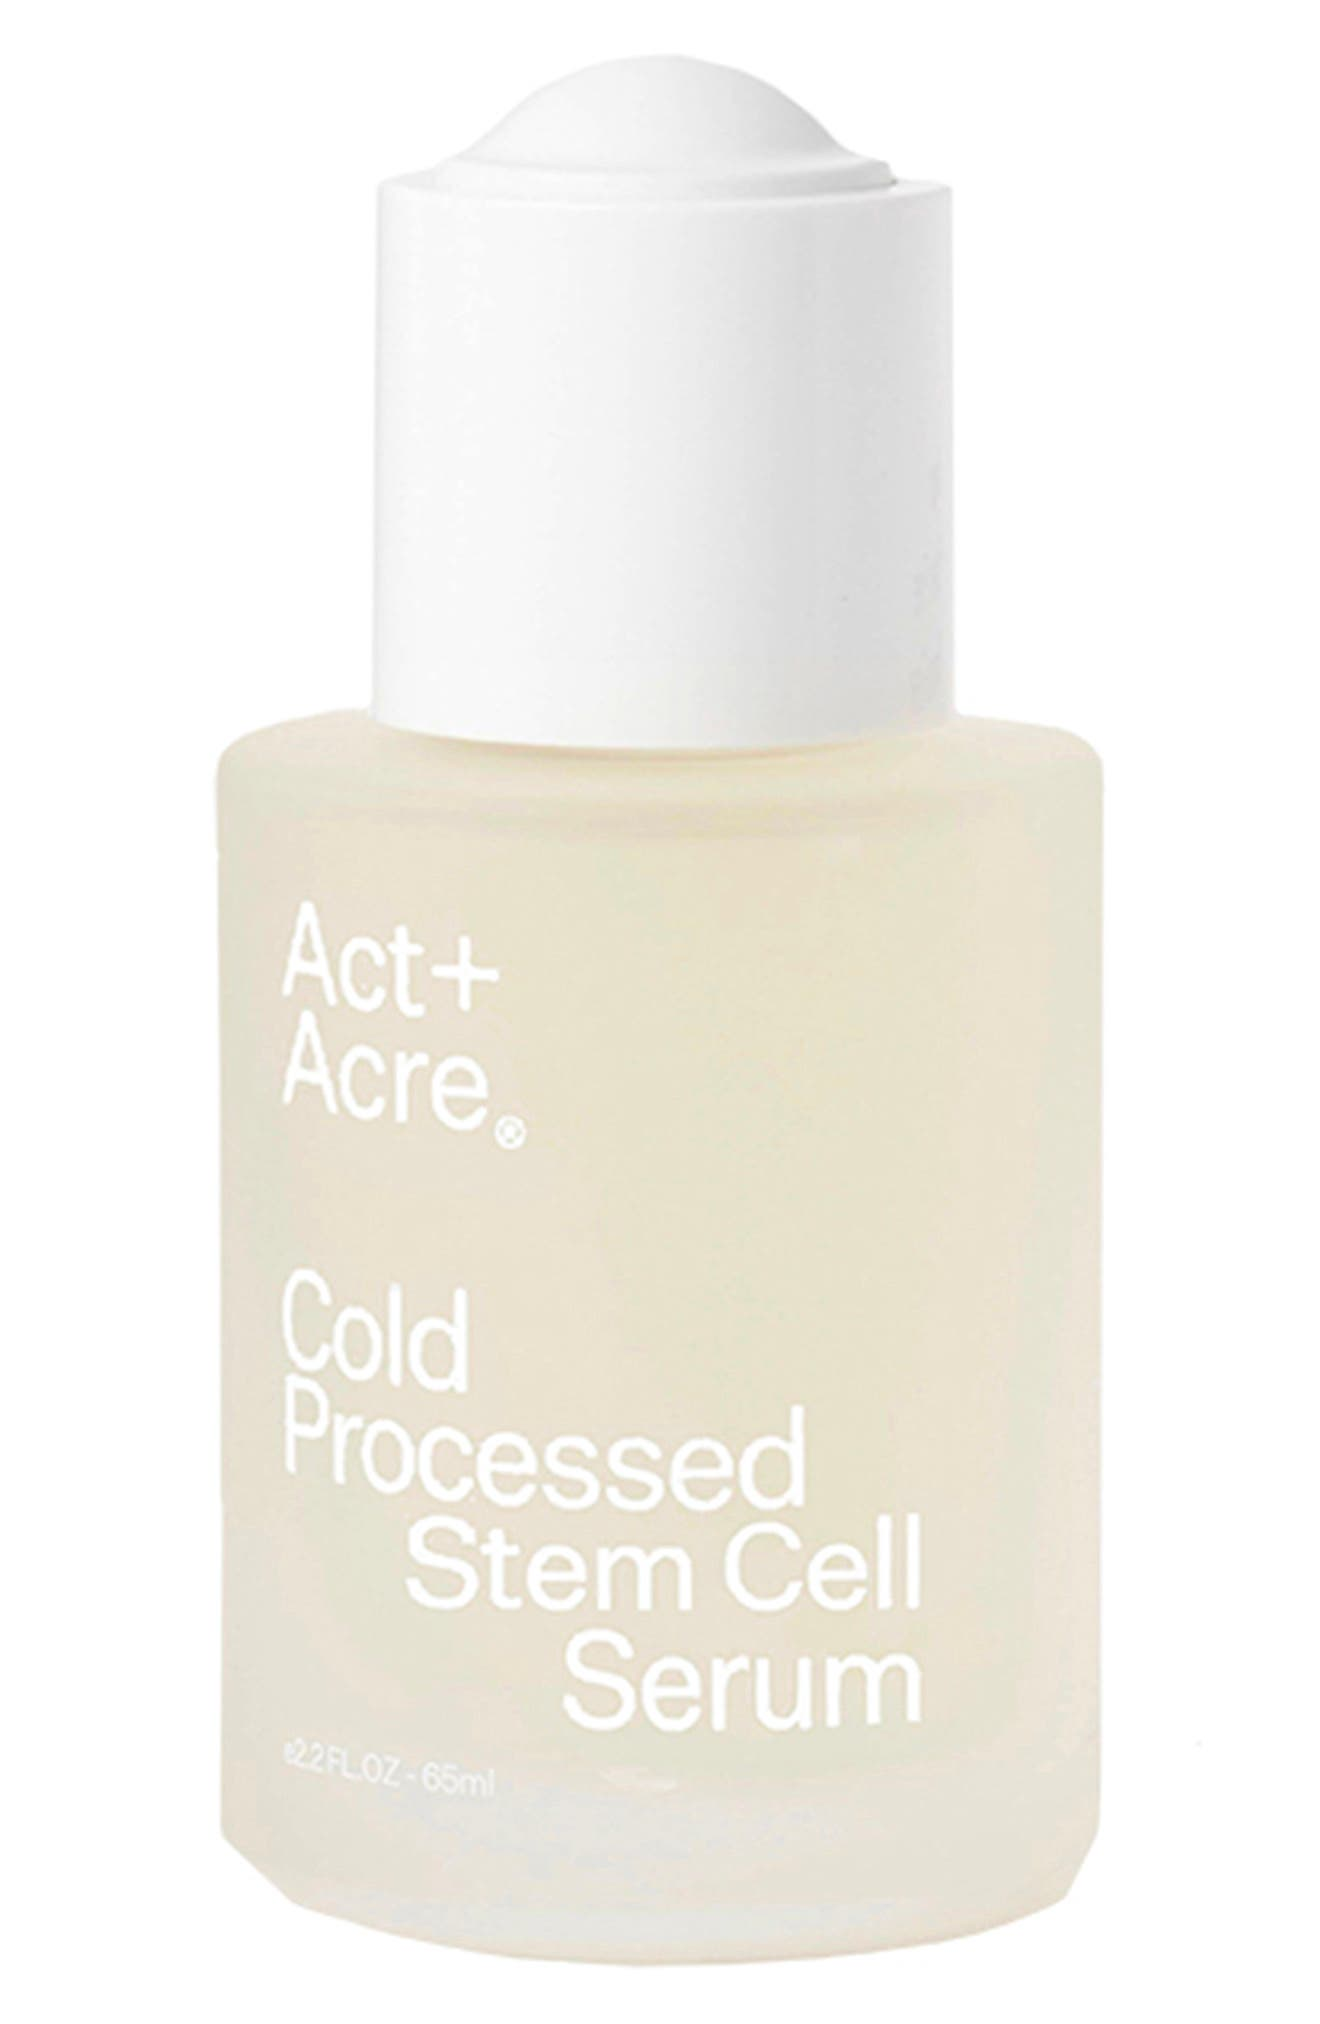 Act+Acre Cold Processed Stem Cell Serum for Hair in No Color at Nordstrom